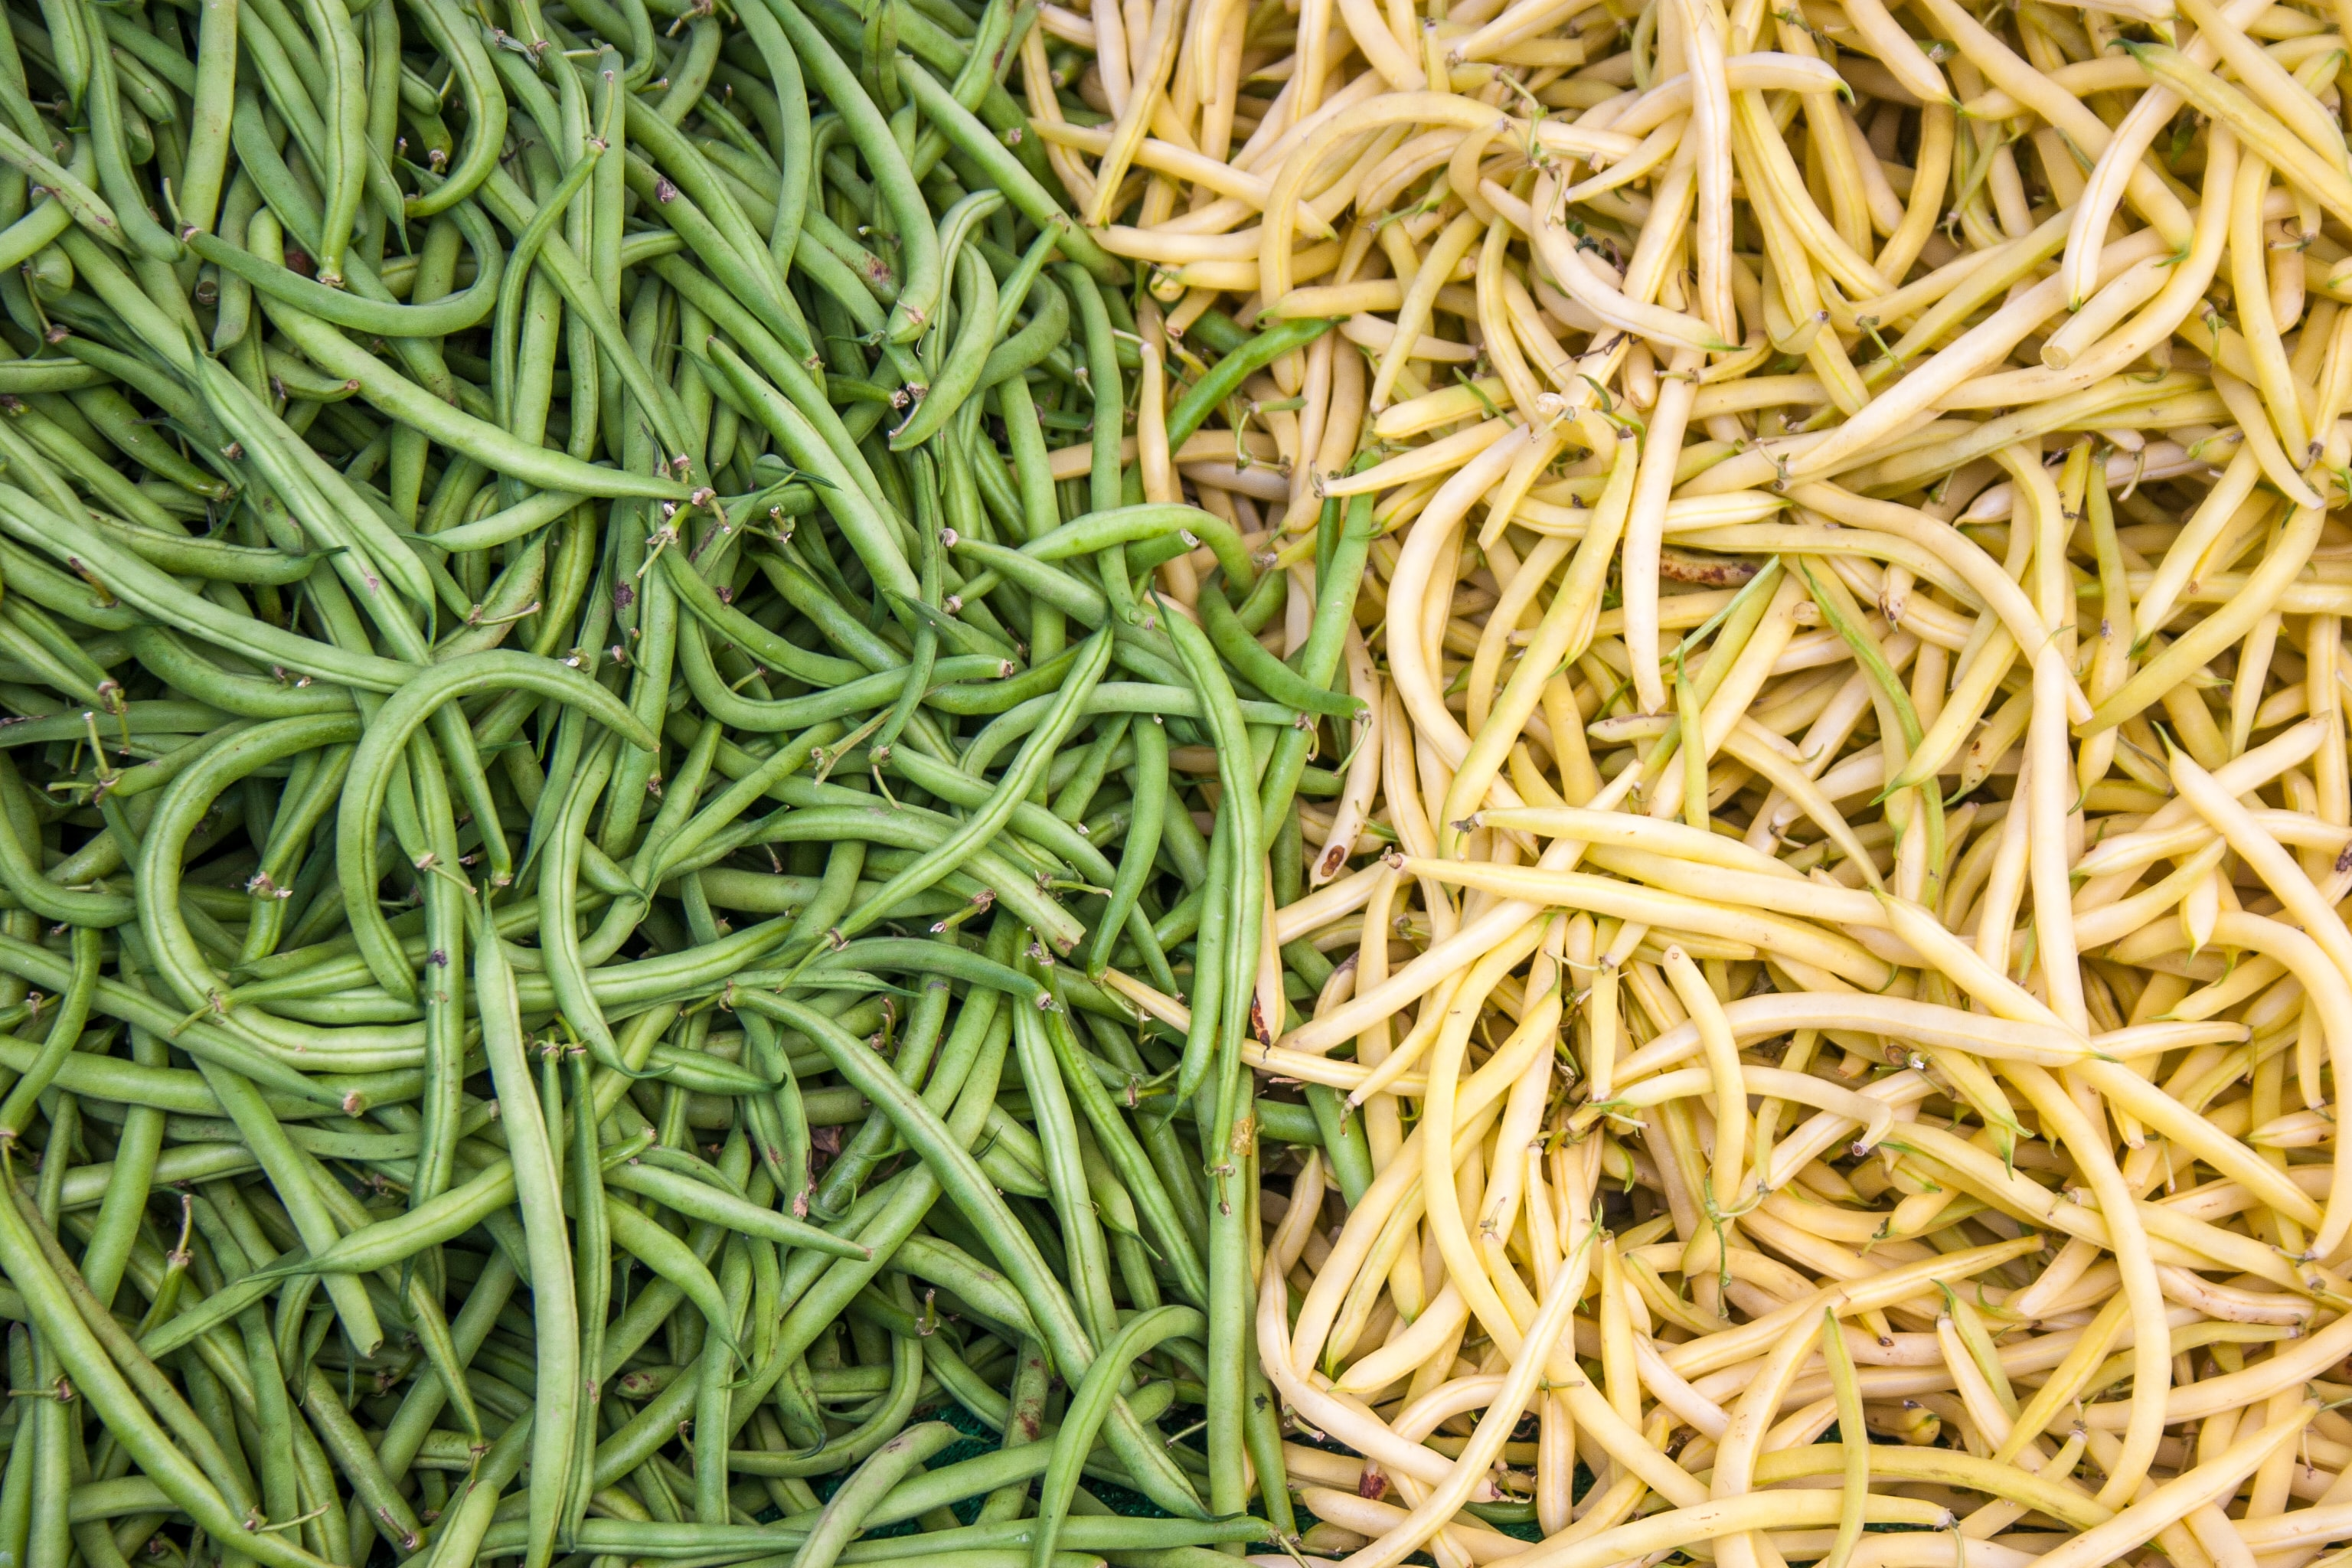 green and yellow vegetables